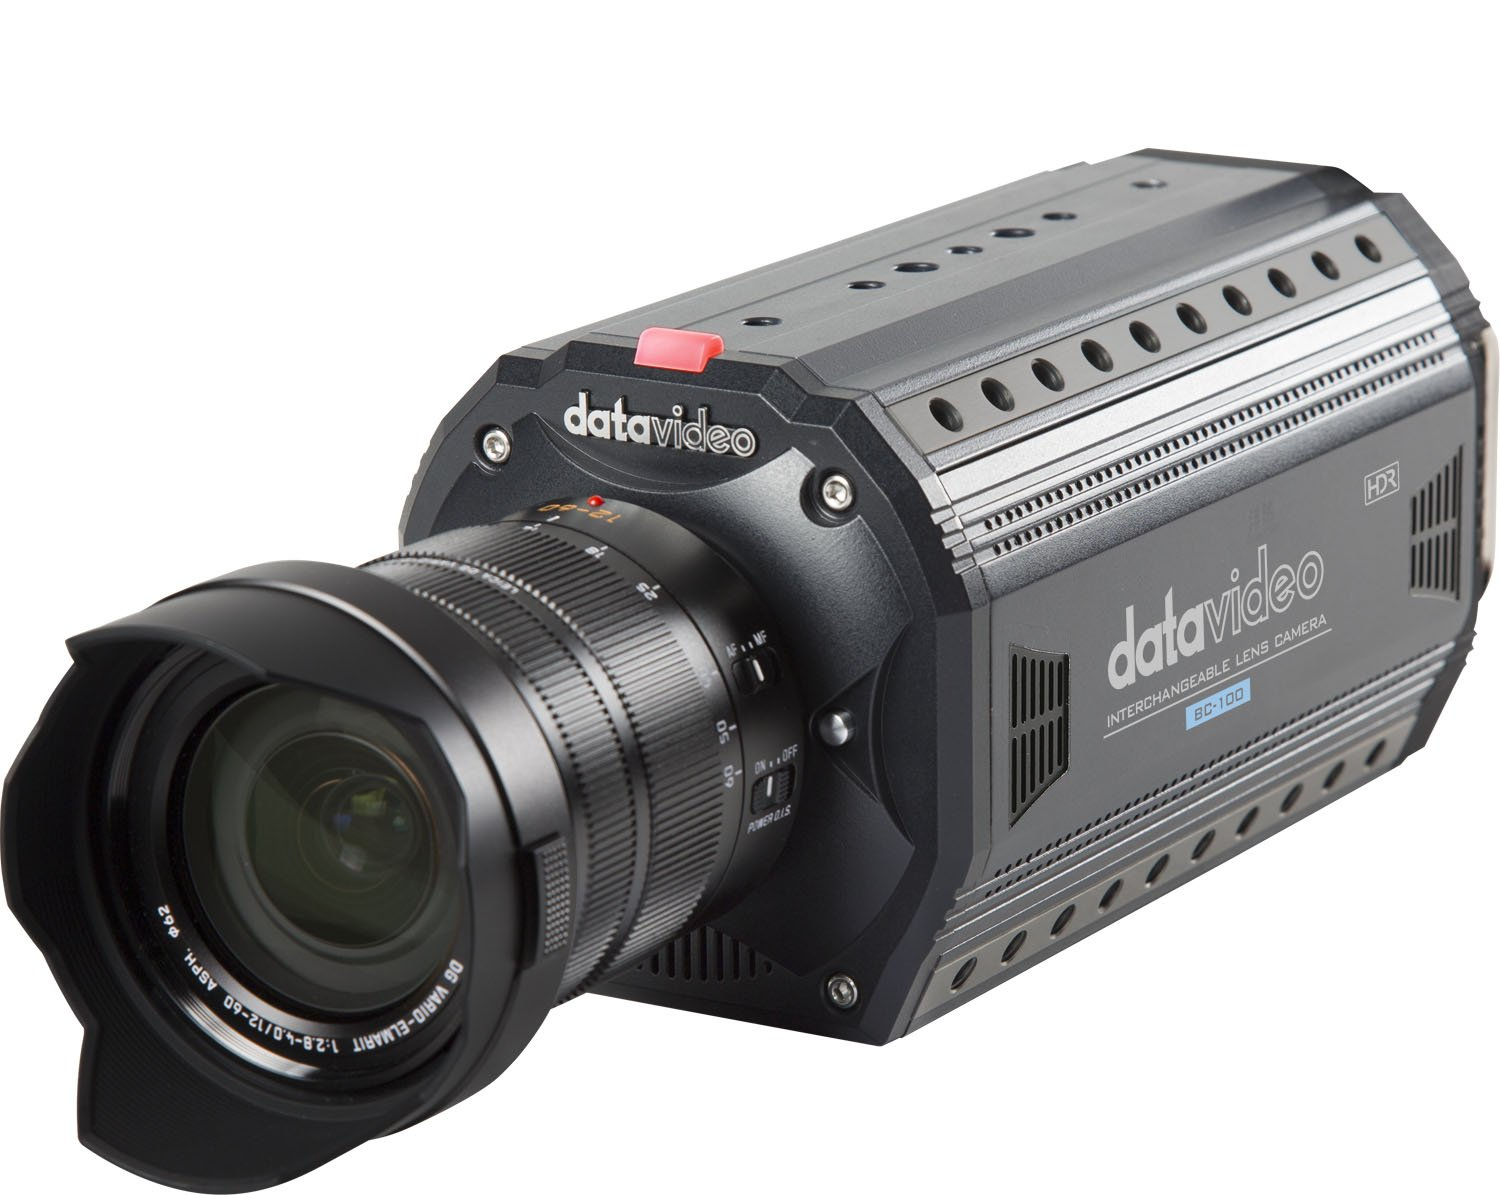 Data Video BC-100 - 12-Bit, 1080p Interchangeable Lens Camera Without Lens